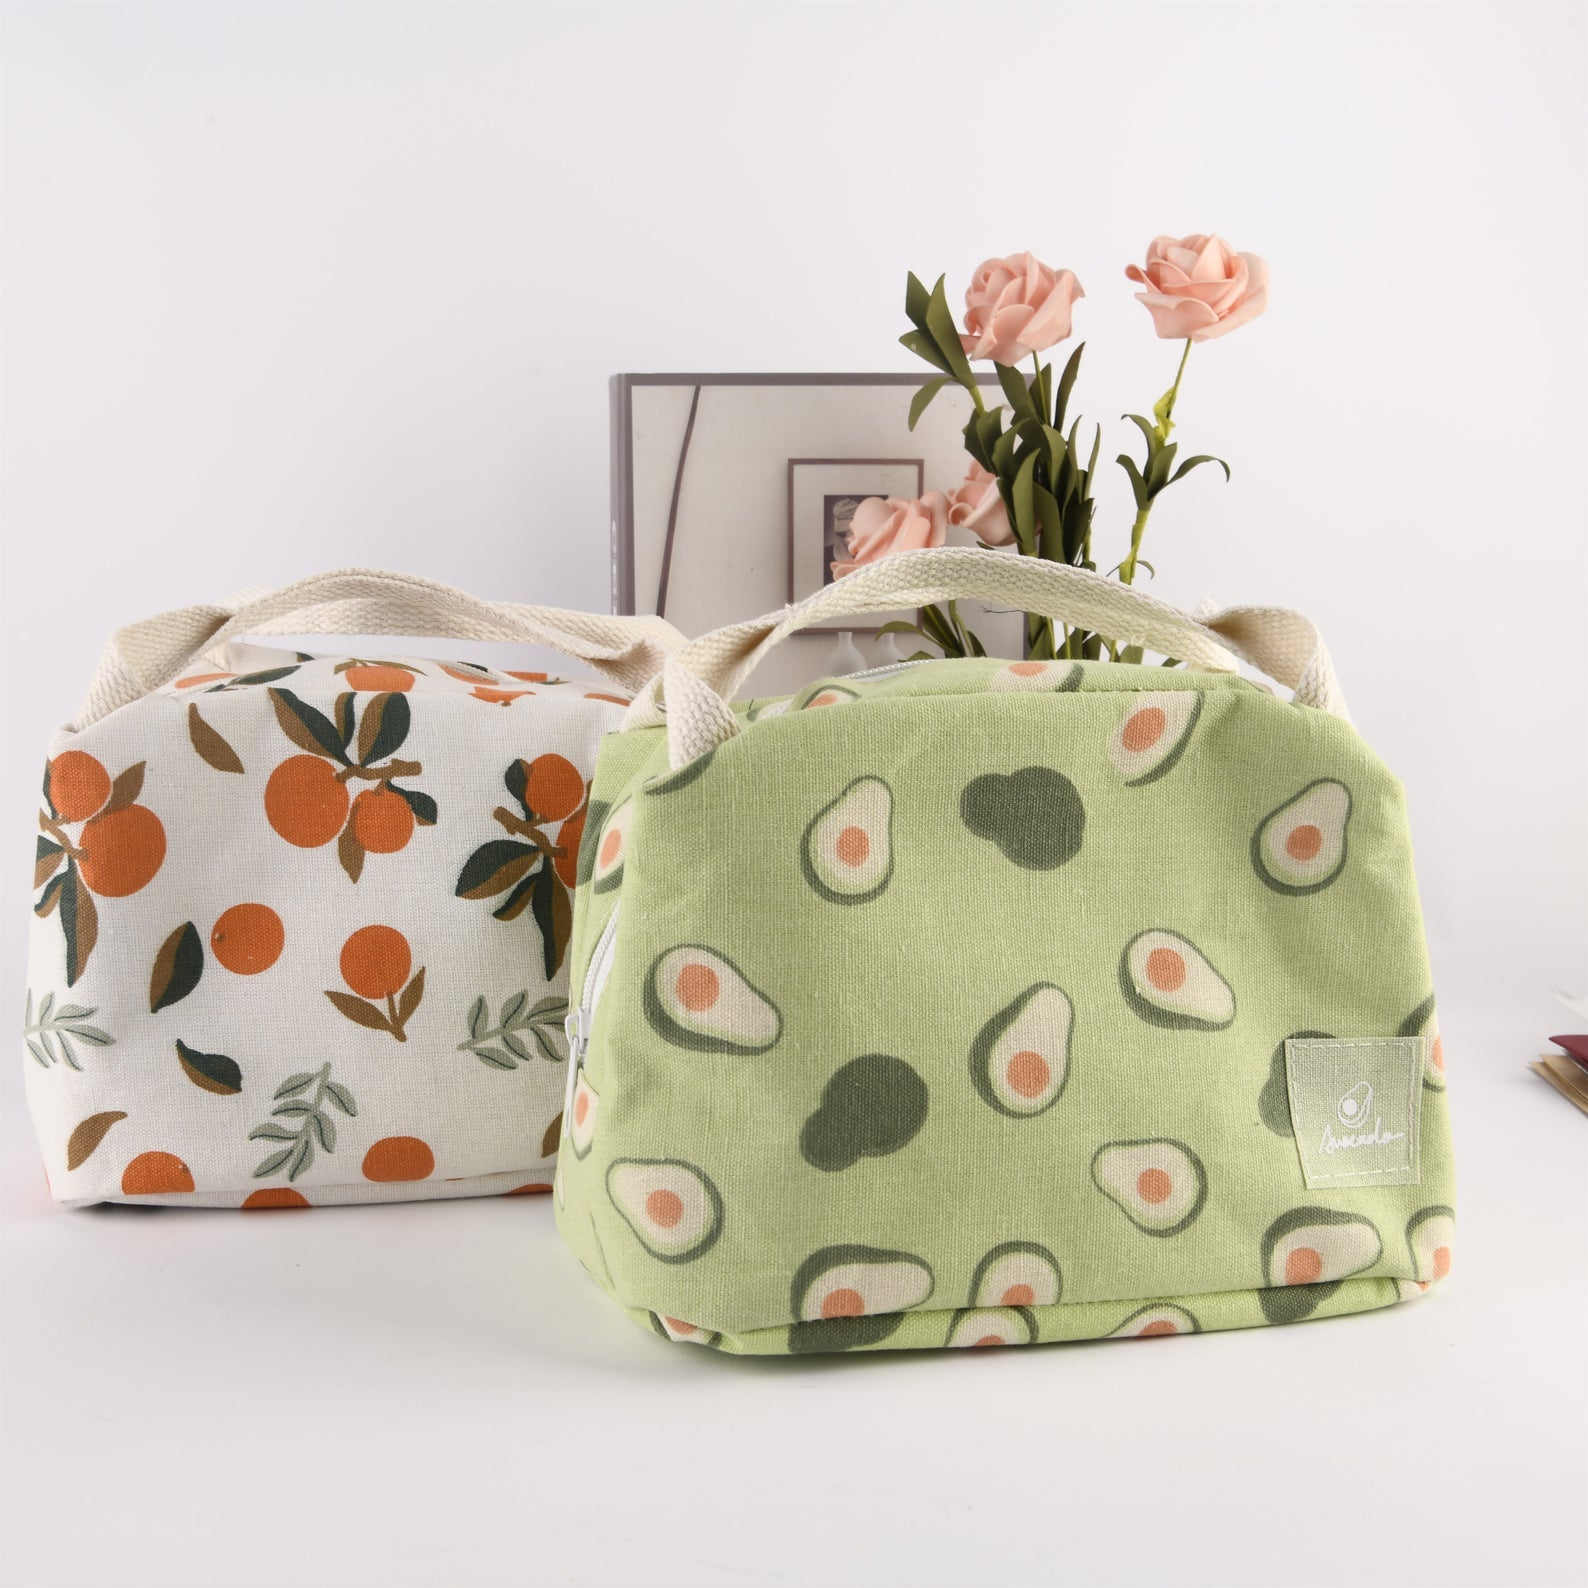 Aesthetic Lunchbox with Avocado Design